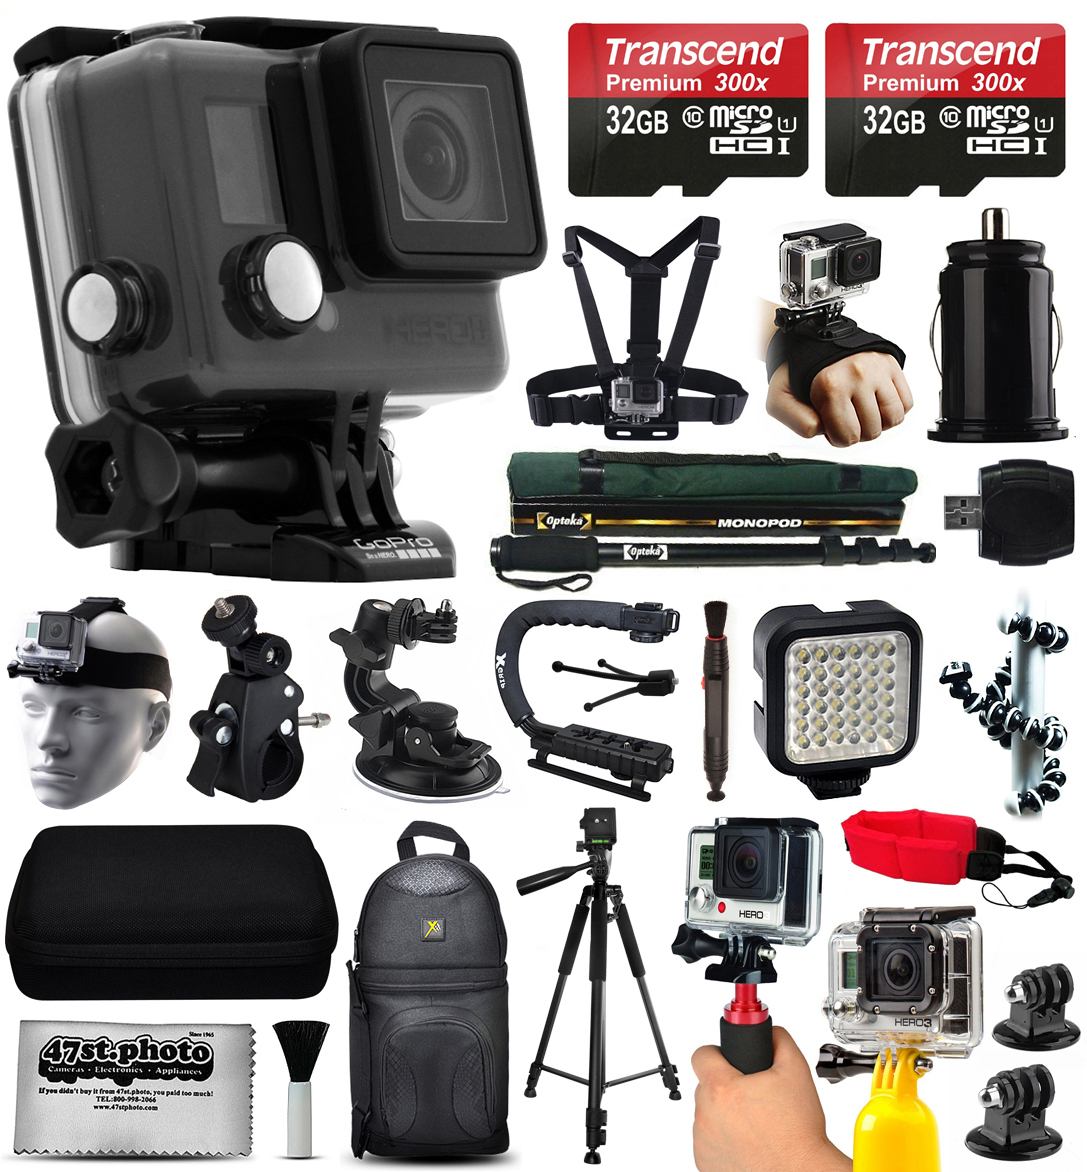 GoPro HERO+ LCD Camera Camcorder (CHDHB-101) with Ultimat...